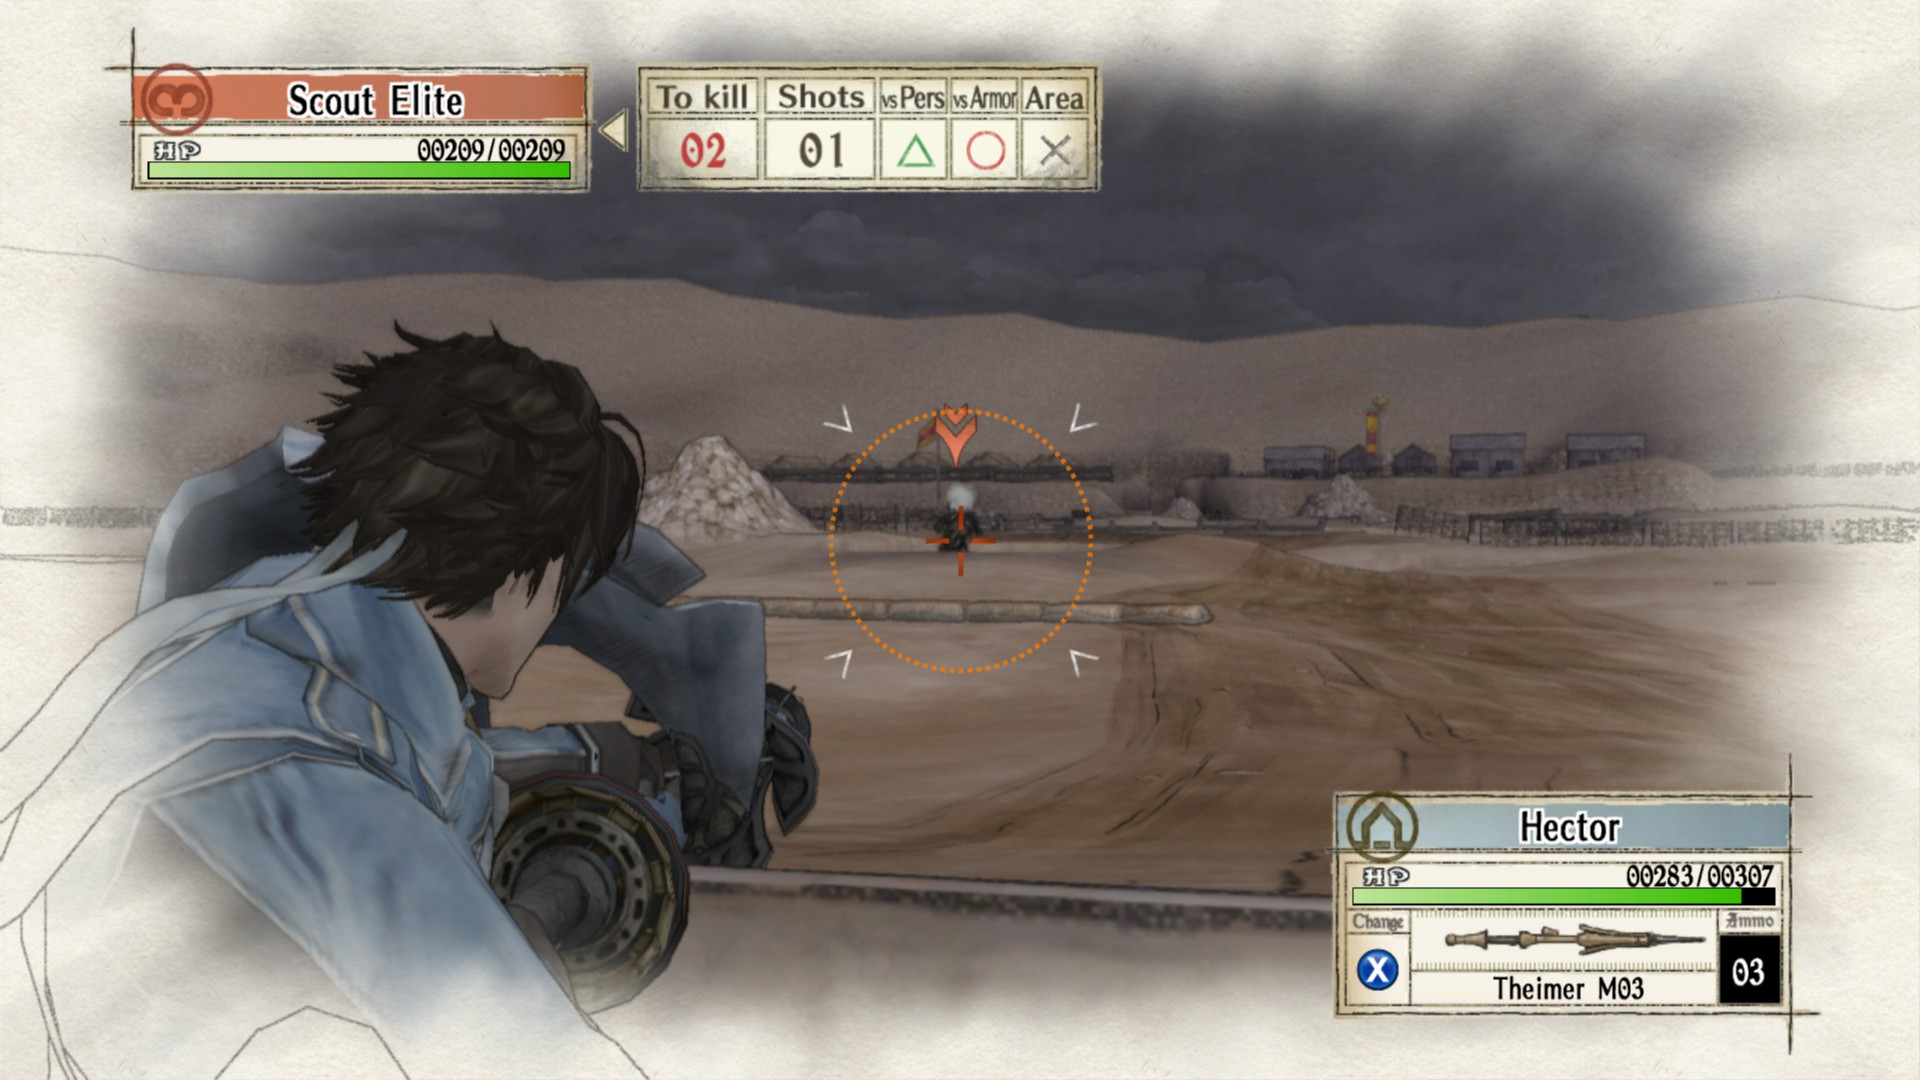 1515945159 185 valkyria chronicles torrent download crotorrents - Valkyria Chronicles Torrent Download - CroTorrents